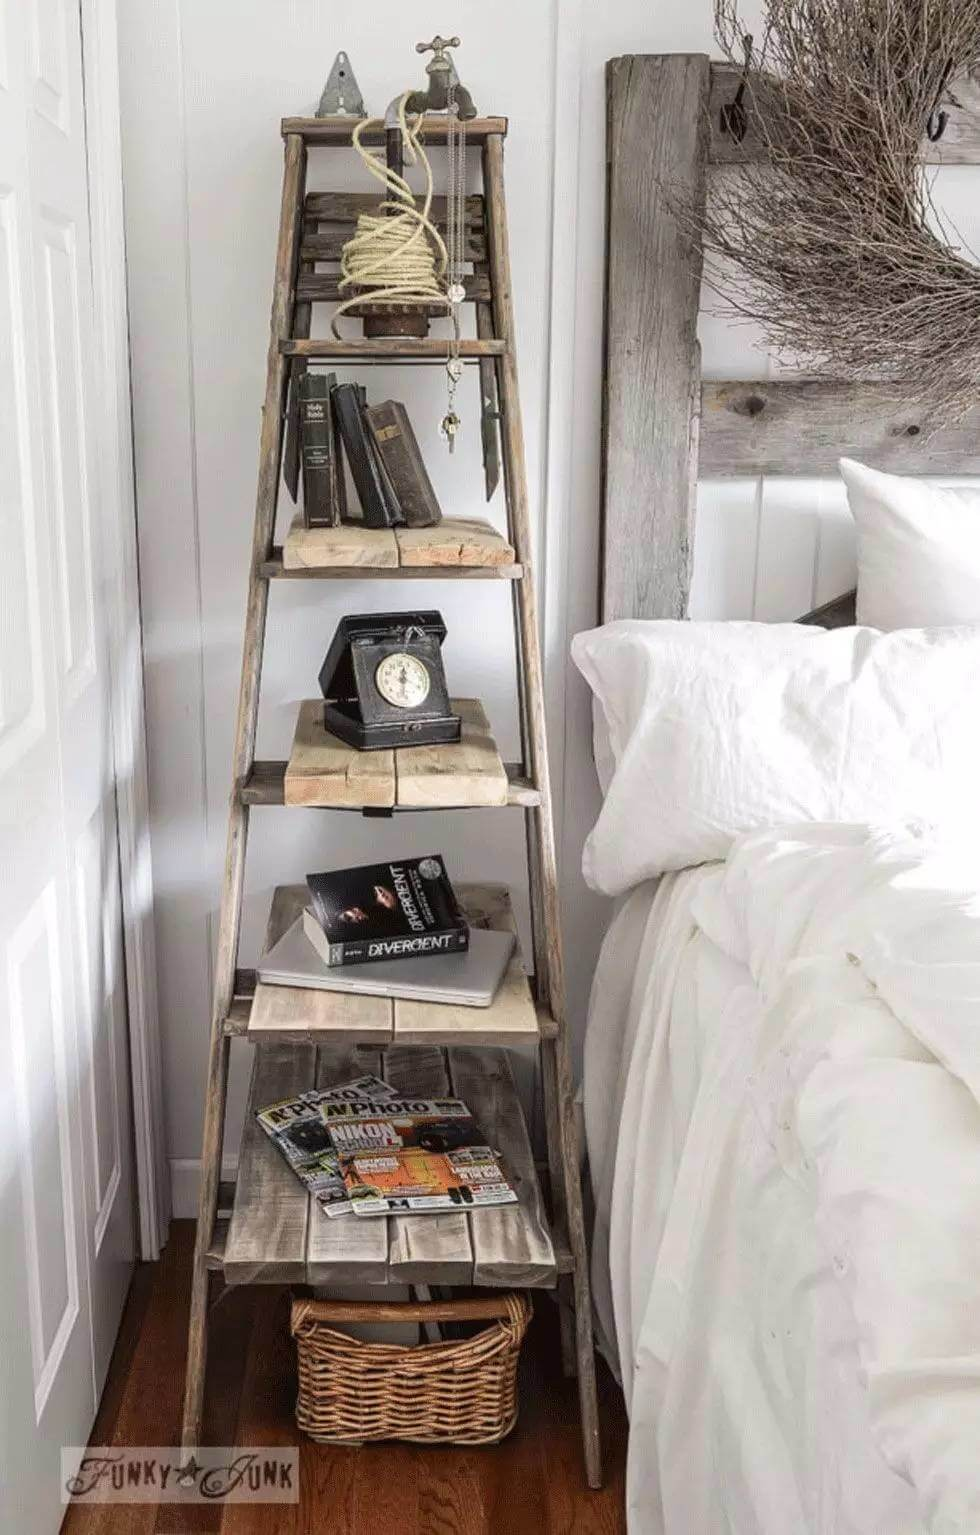 17. Upcycled Orchard Ladder Turned Nightstand